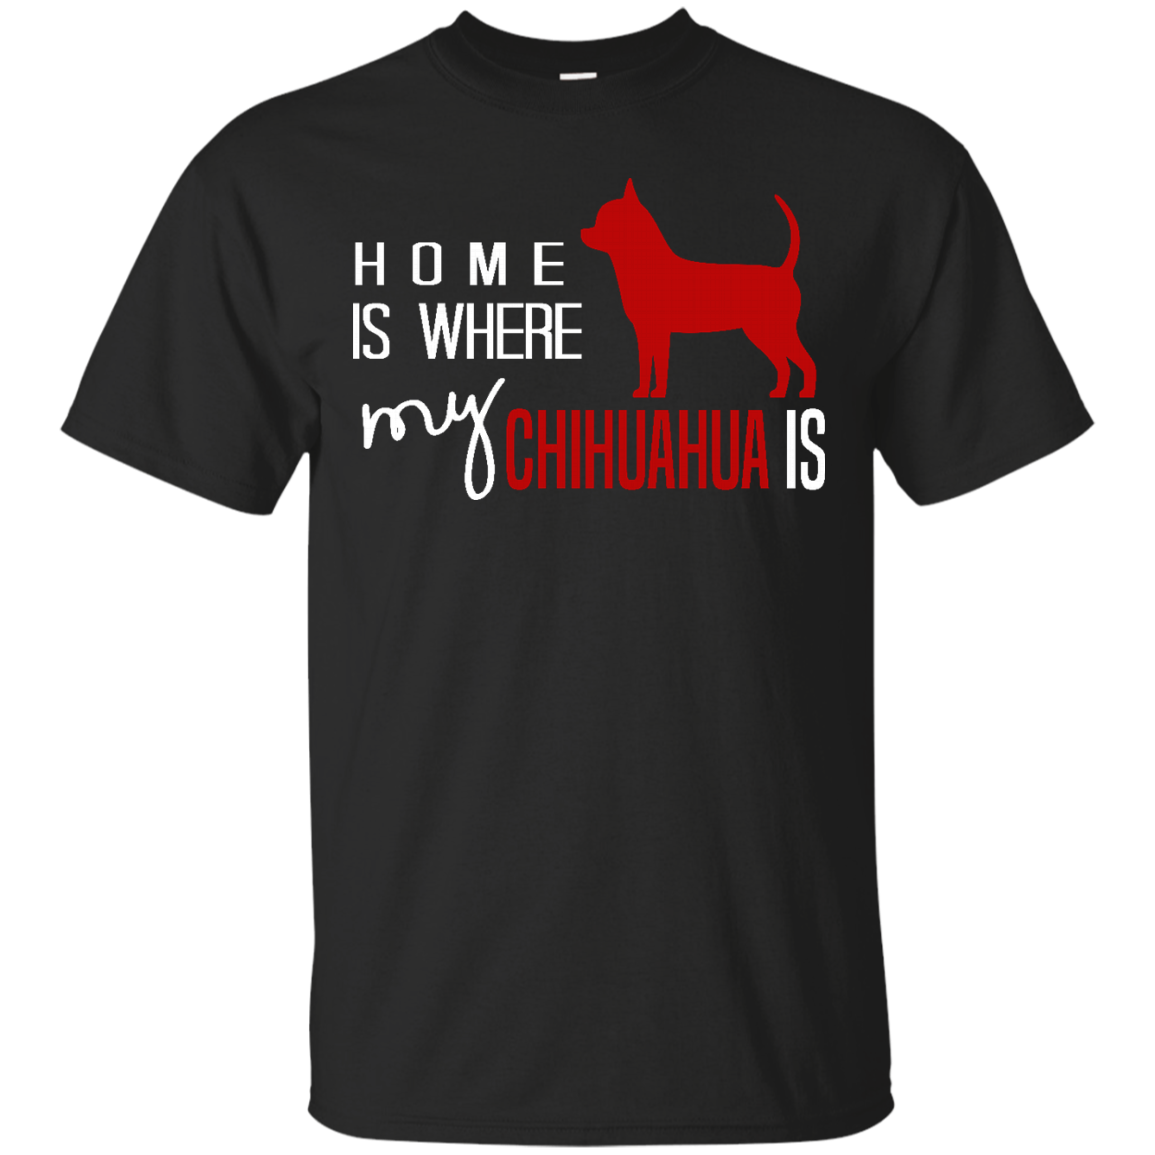 Chihuahua Dog T shirt Home is Where My Chihuahua Is like as a gift for who loves Chihuahua  yourself  friends on birthday  christmas or Occasions